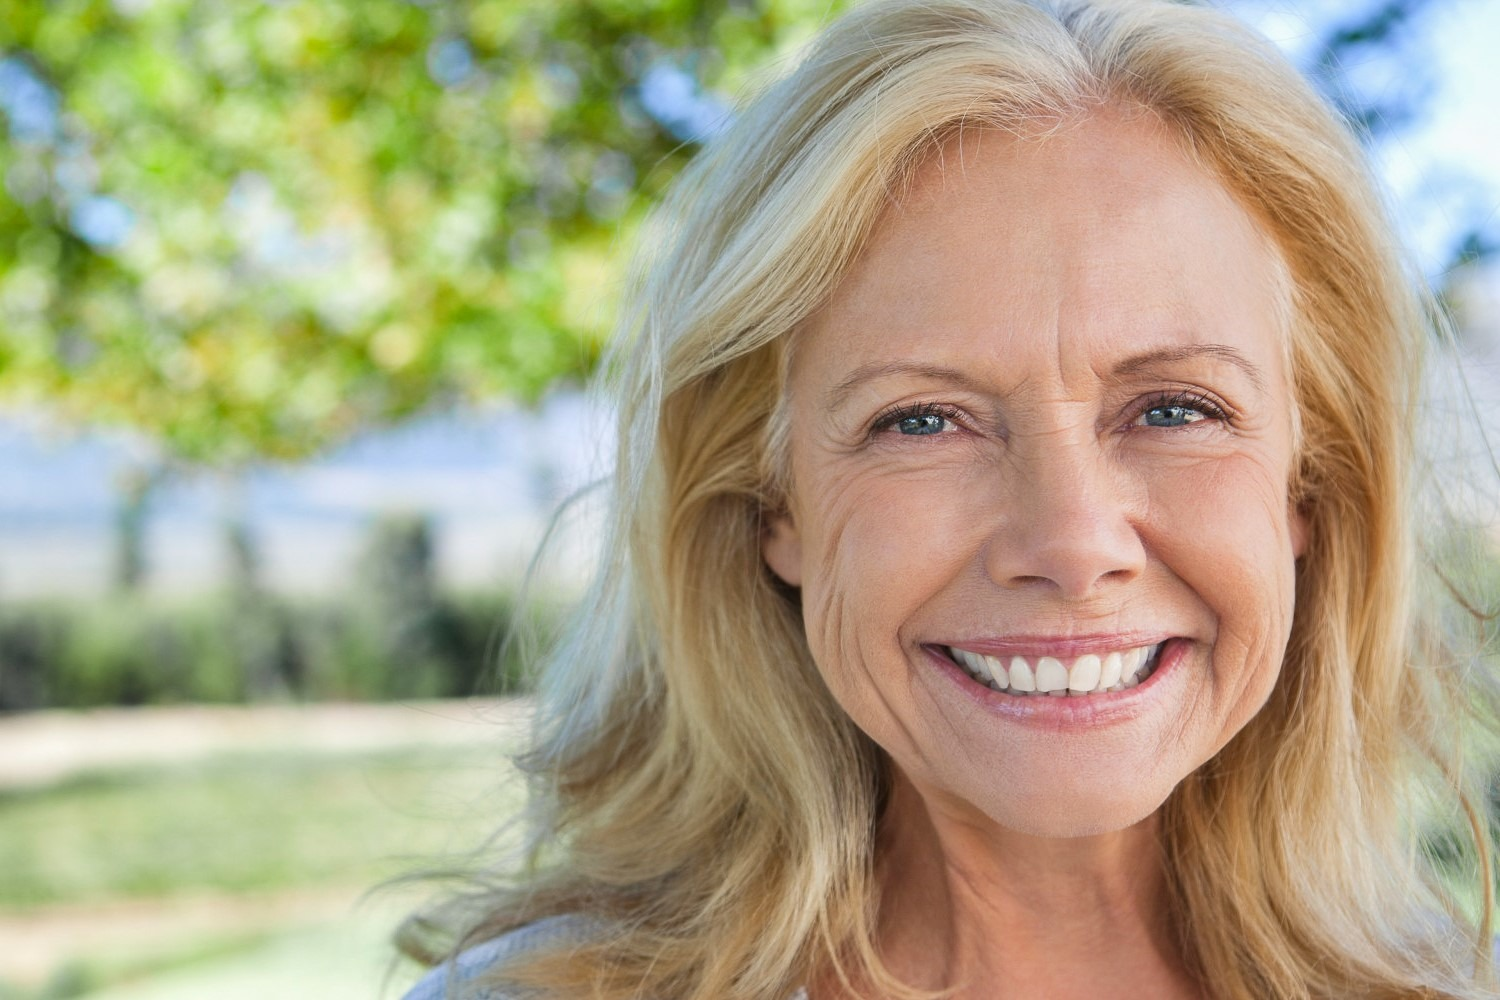 Happy middle aged woman with healthy skincare in Omaha, NE